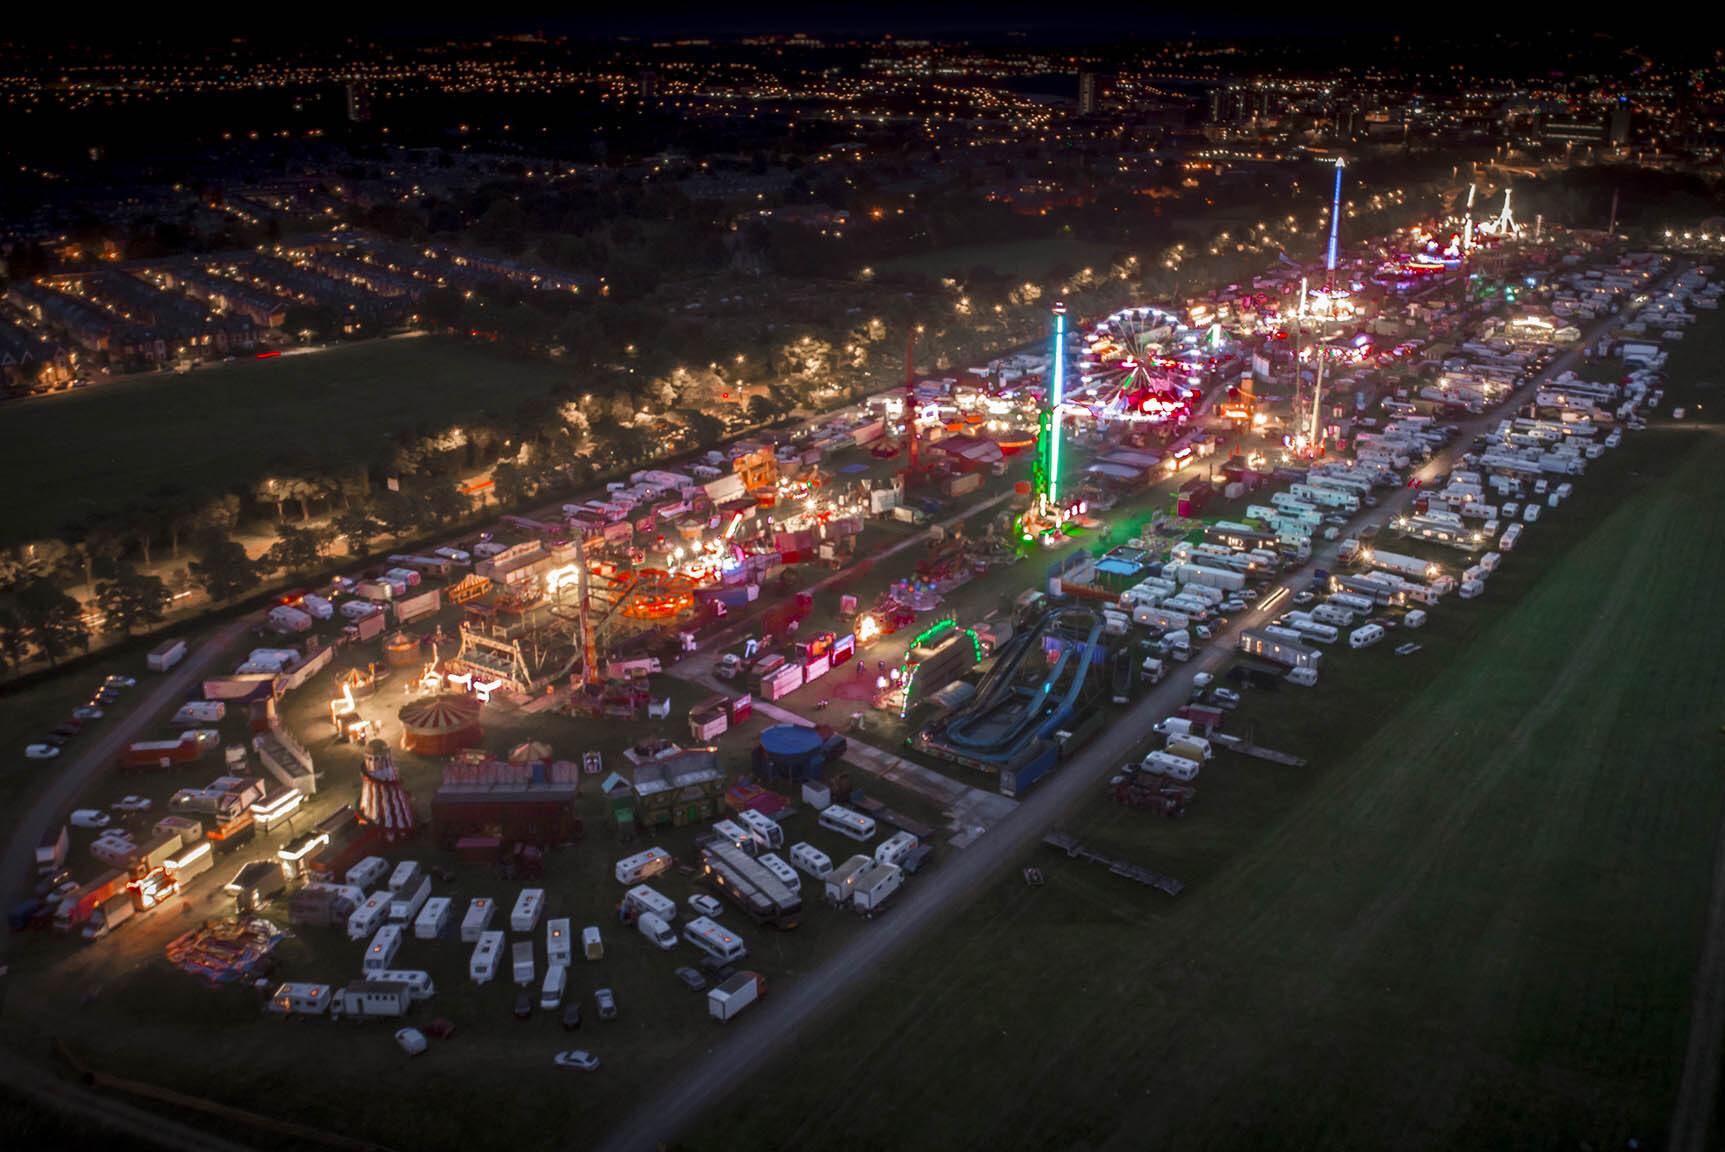 Largest travelling fair seen by drone. Night aerial photography